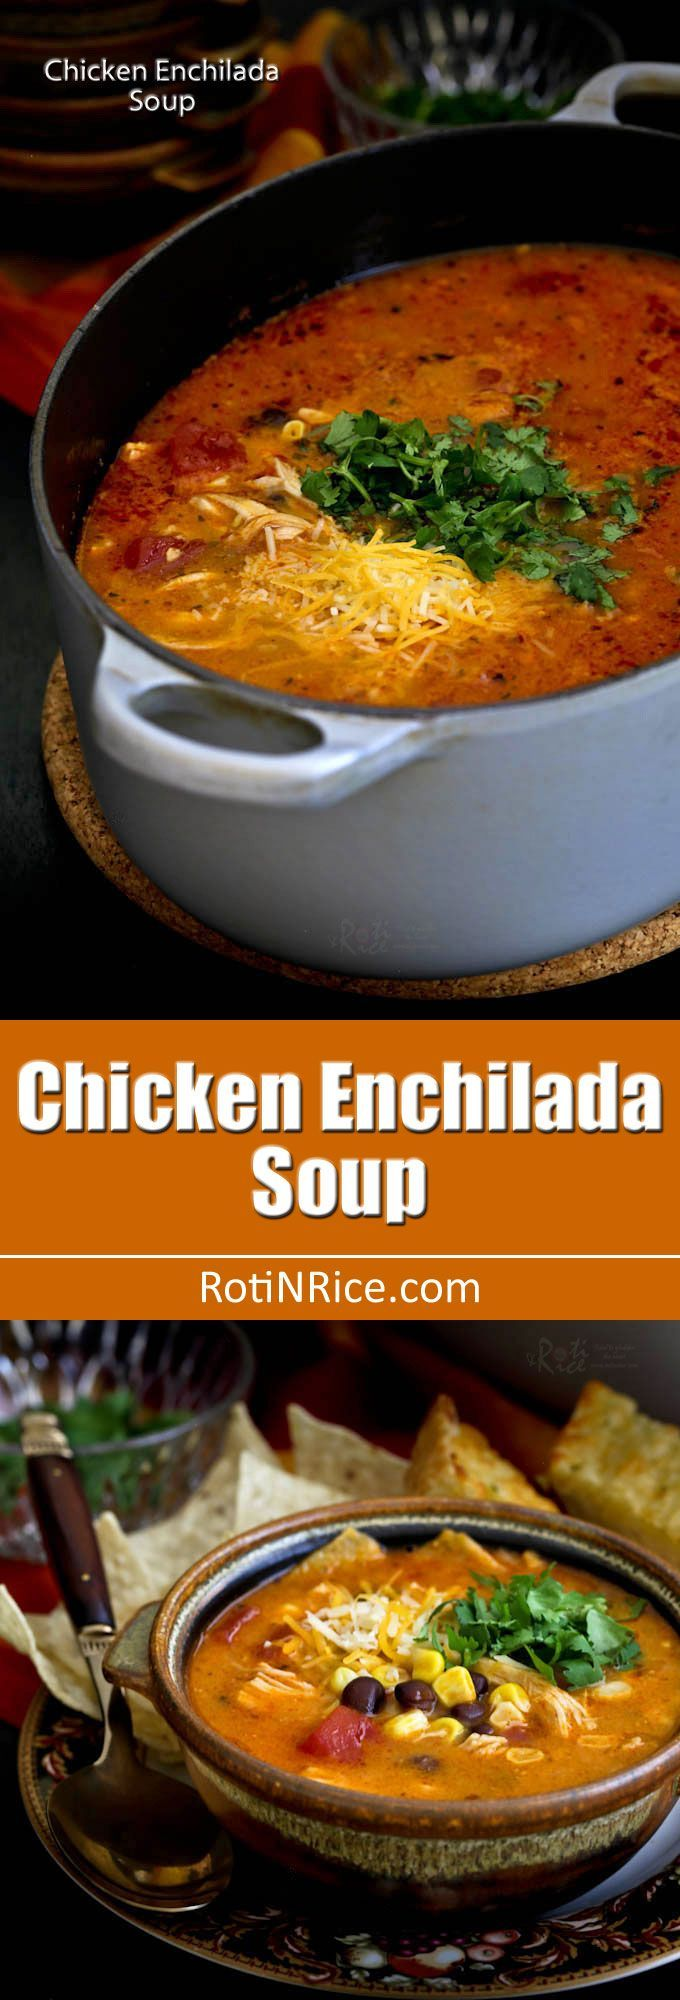 Easy to prepare creamy Chicken Enchilada Soup with shredded chicken, black beans, corn, diced tomatoes, and melted cheese. So comforting and delicious! | http://RotiNRice.com